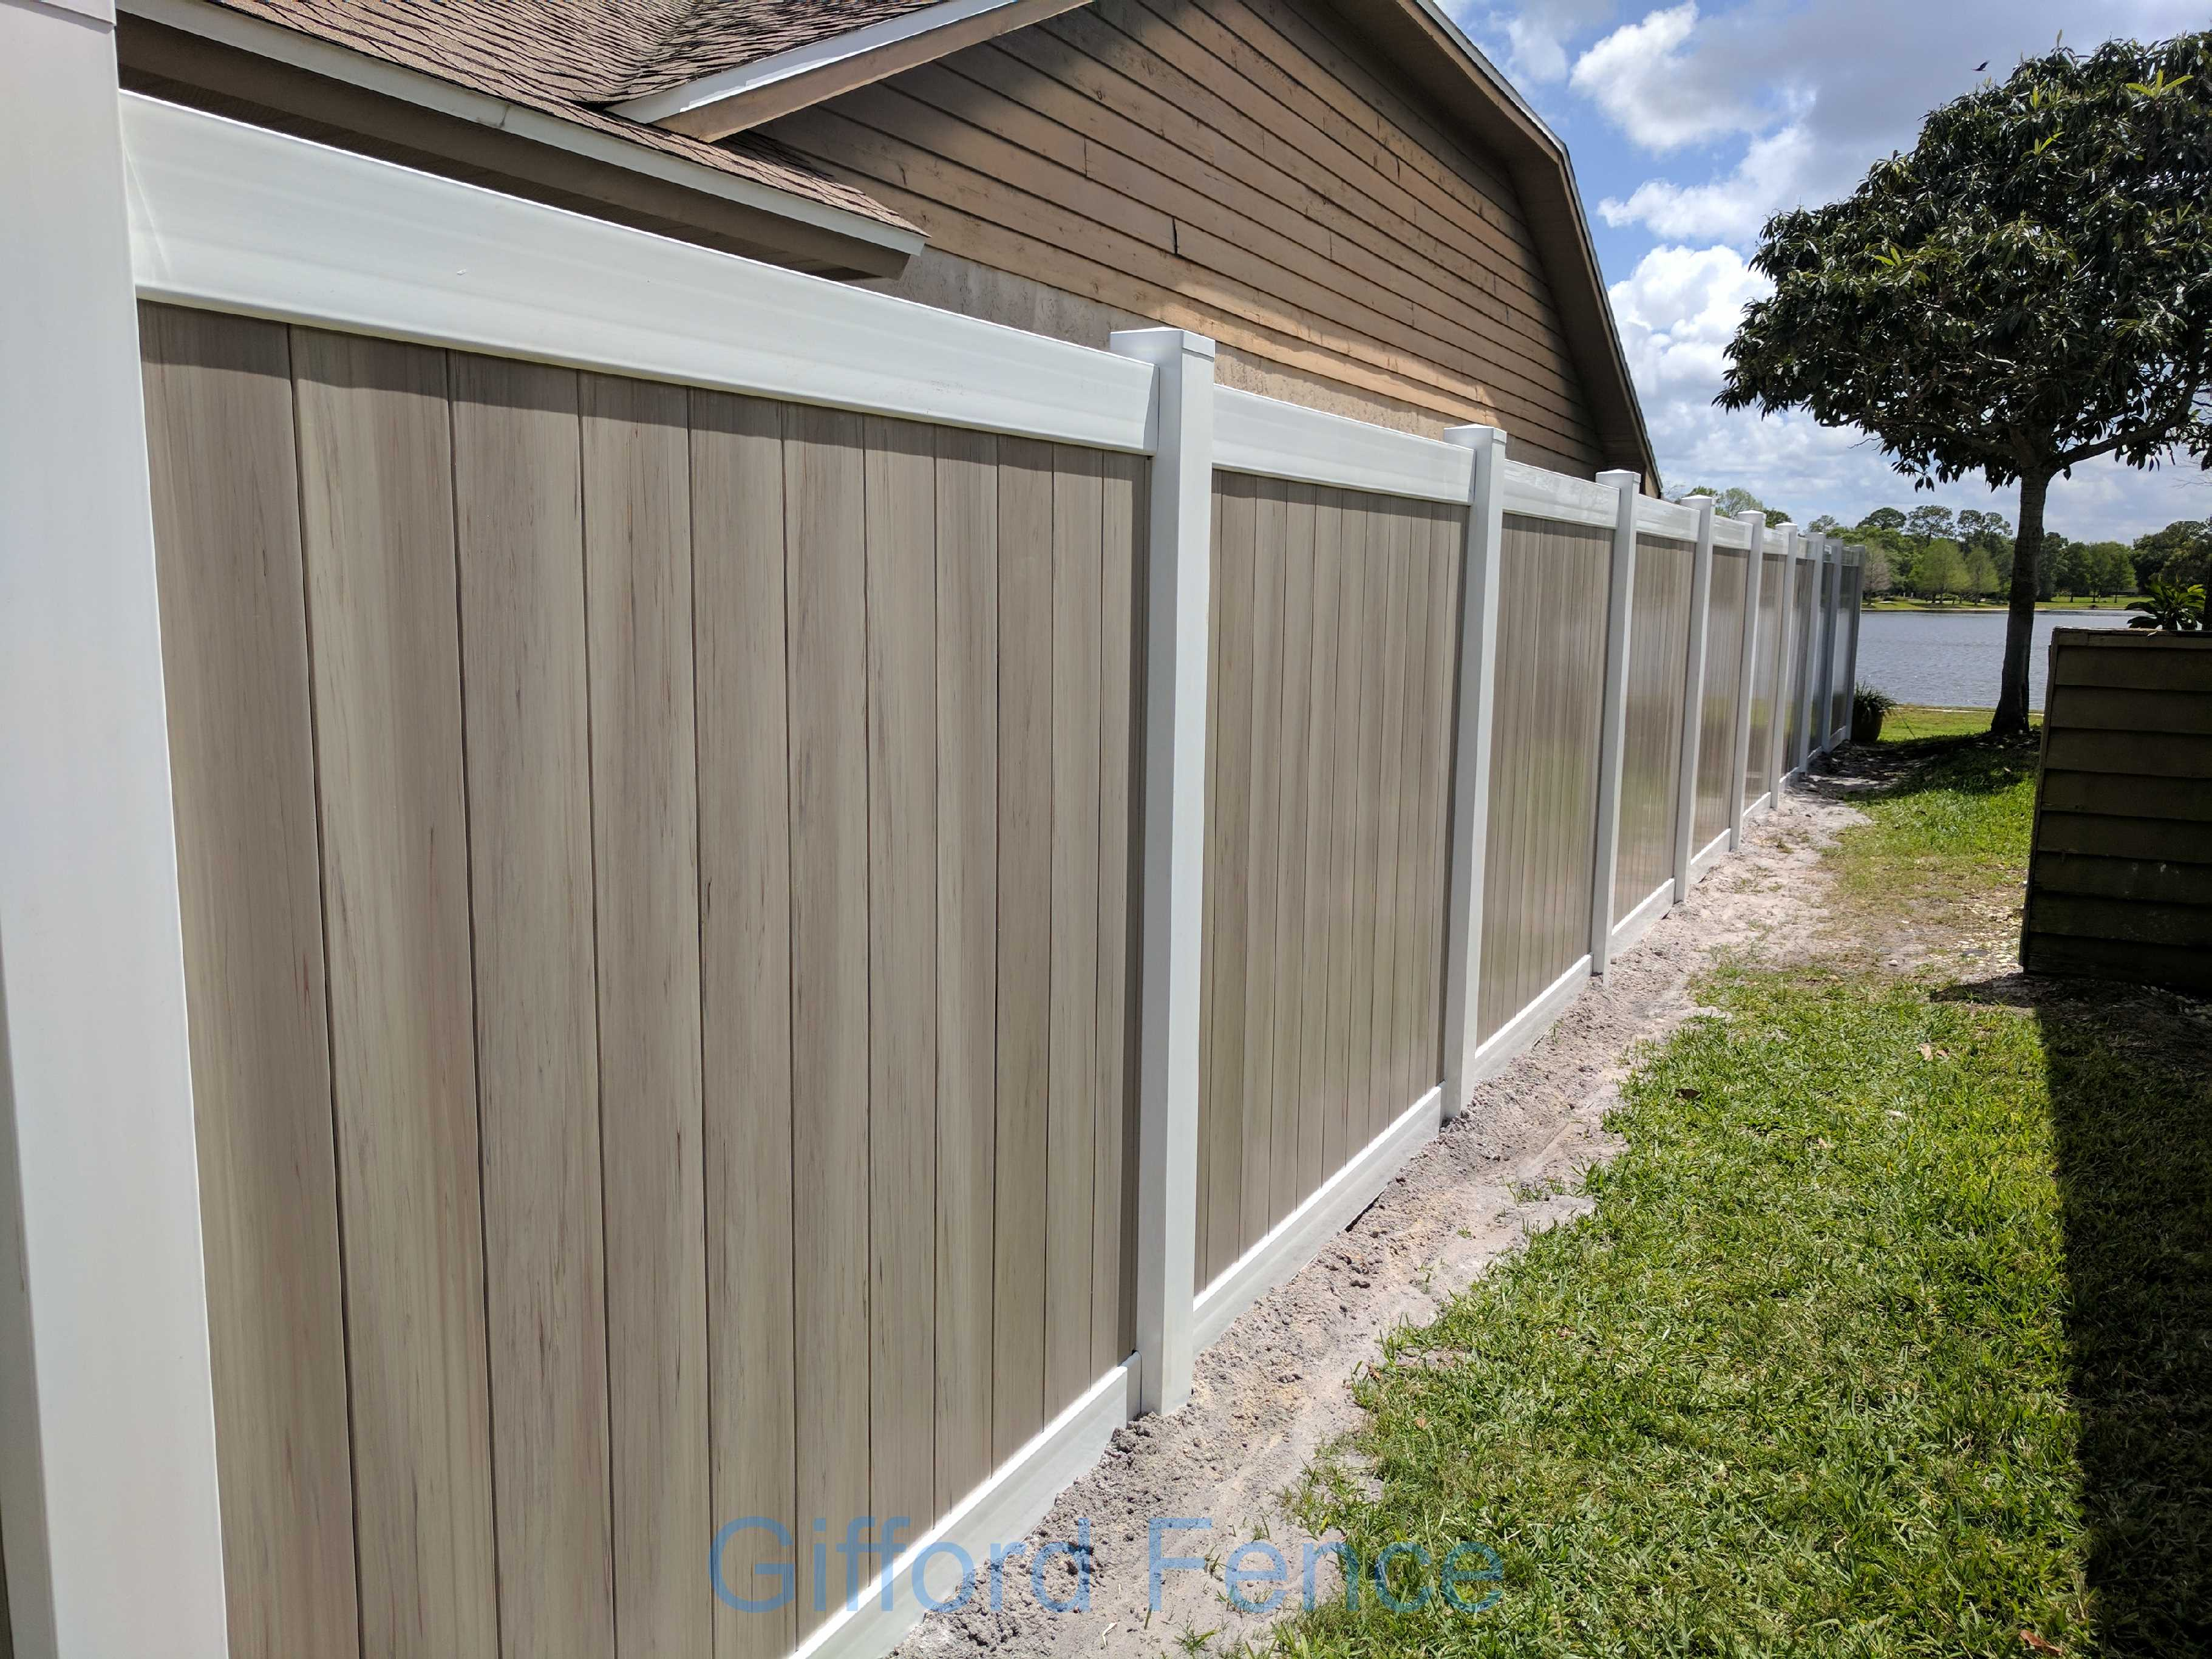 Pictures Of Vinyl Privacy Fences Gifford Fence